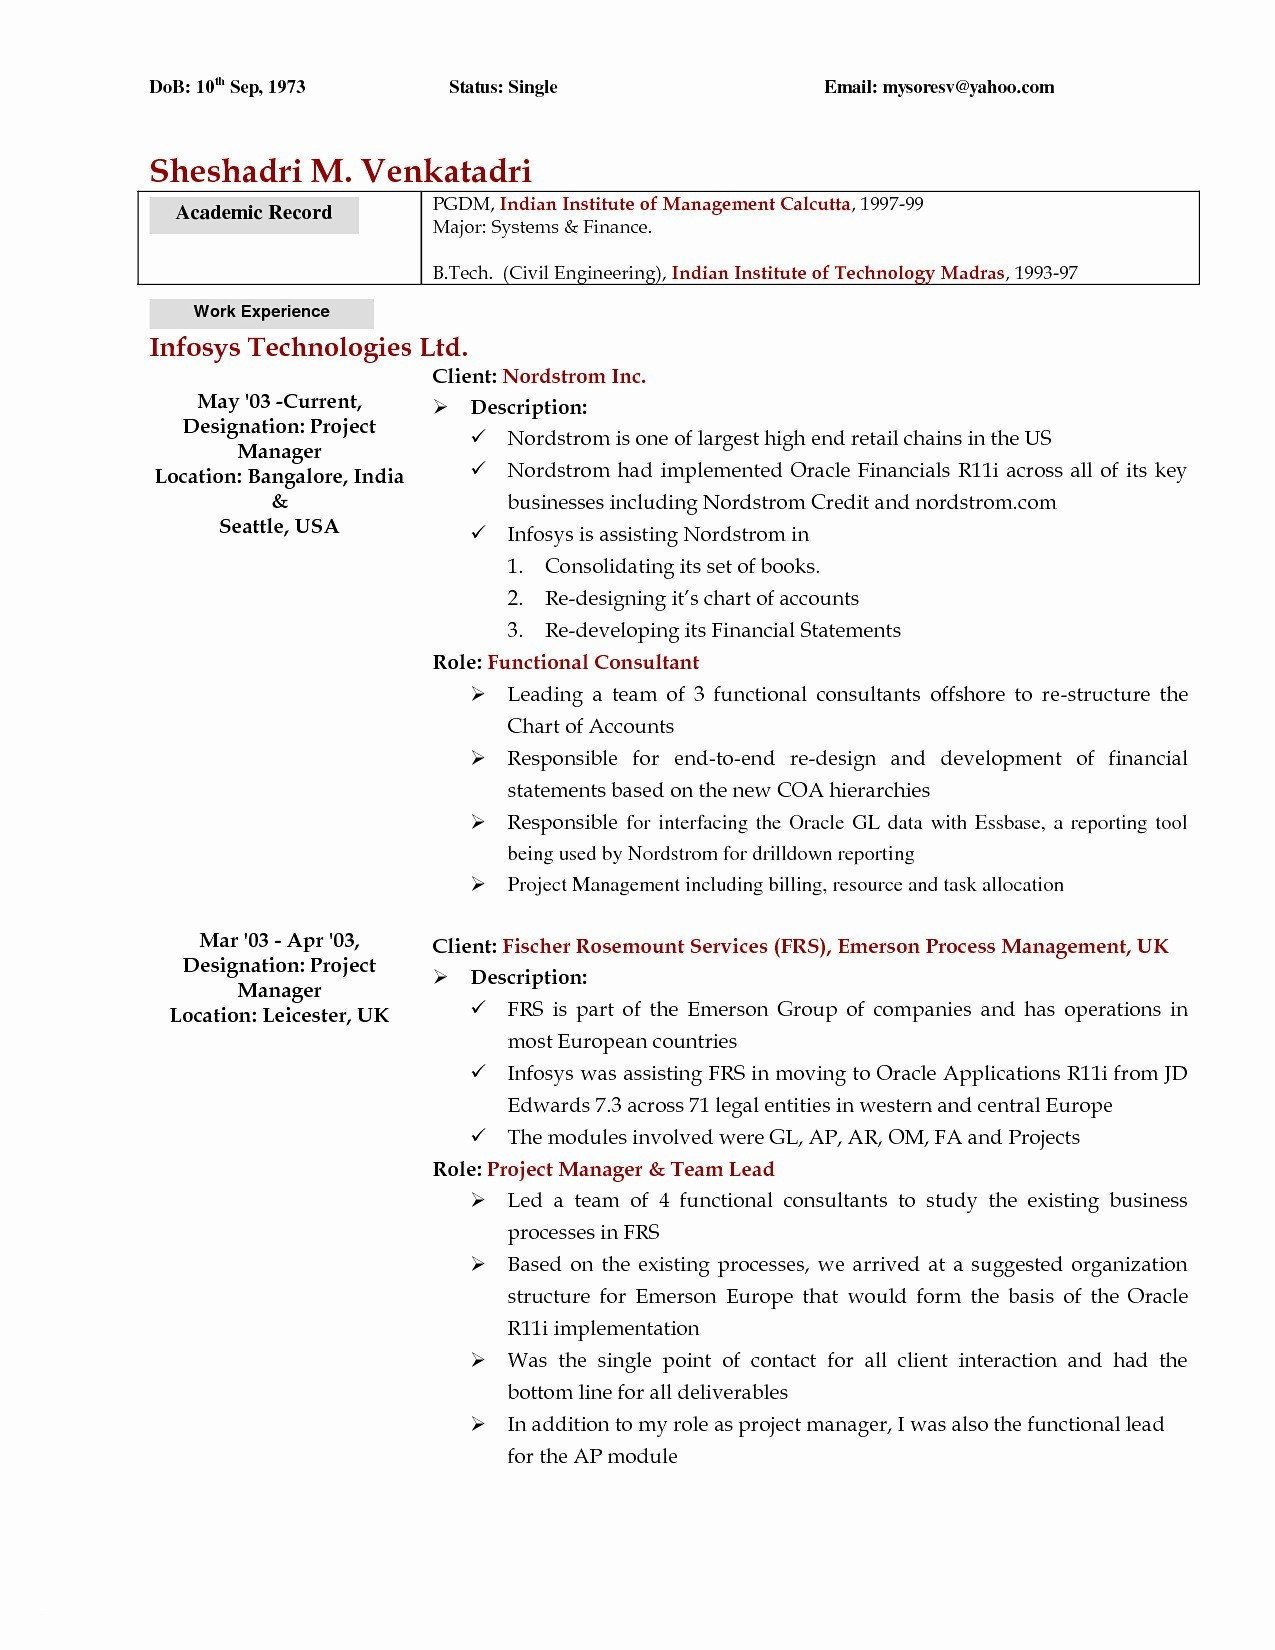 Example Of Housekeeping Resume - Housekeeping Resume Templates Reference 19 Awesome Housekeeping